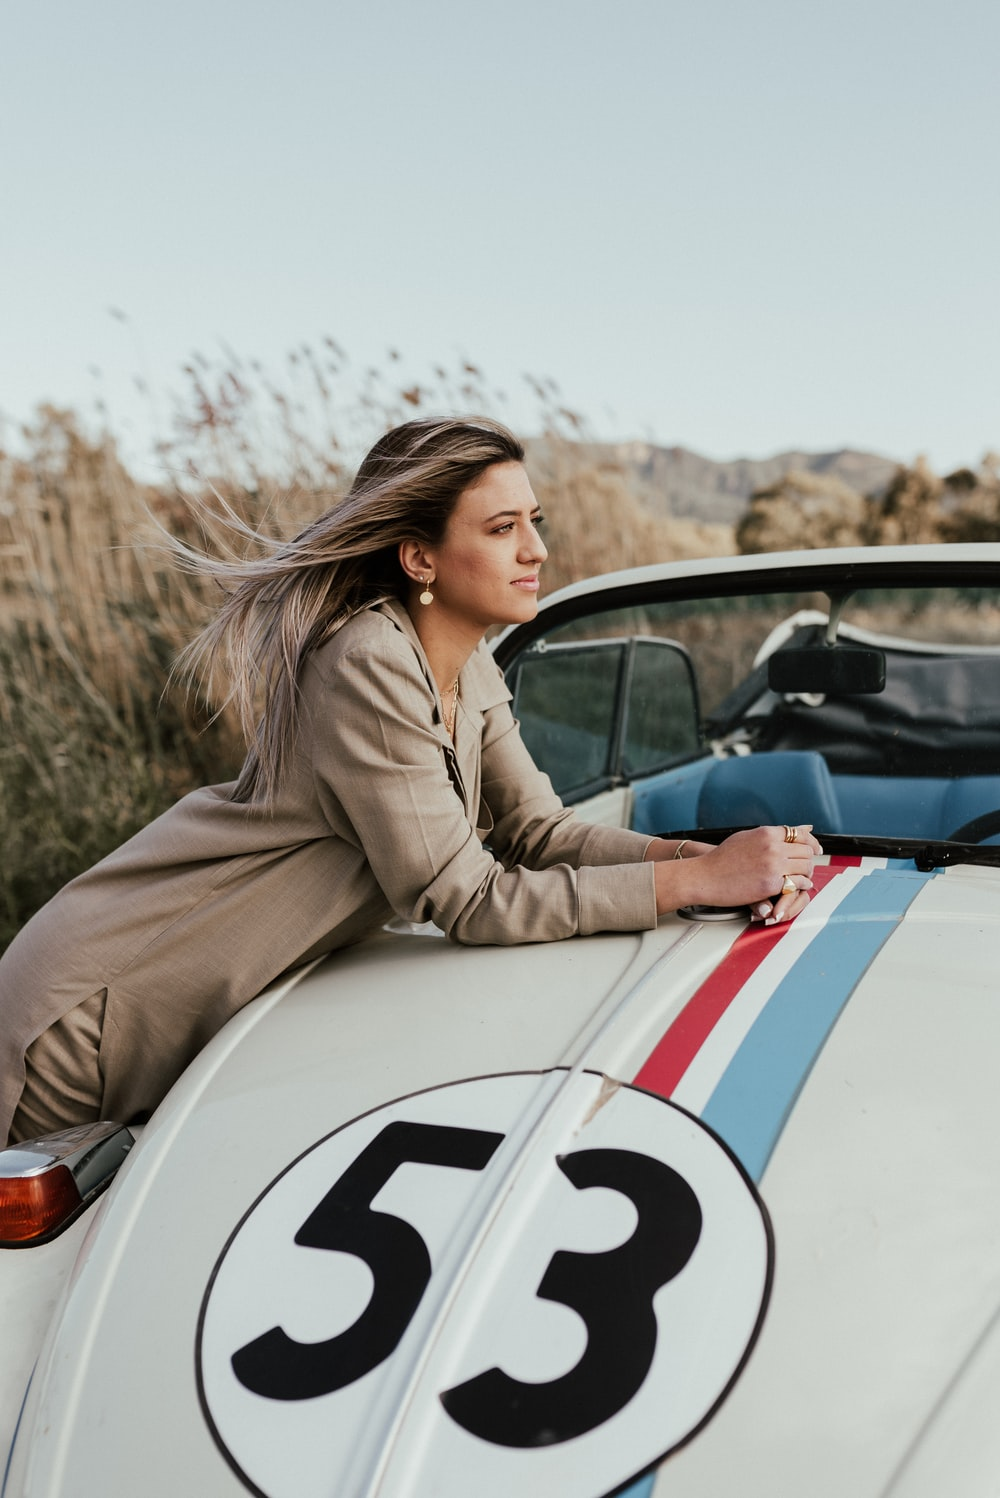 woman in brown coat sitting on white and blue car during daytime